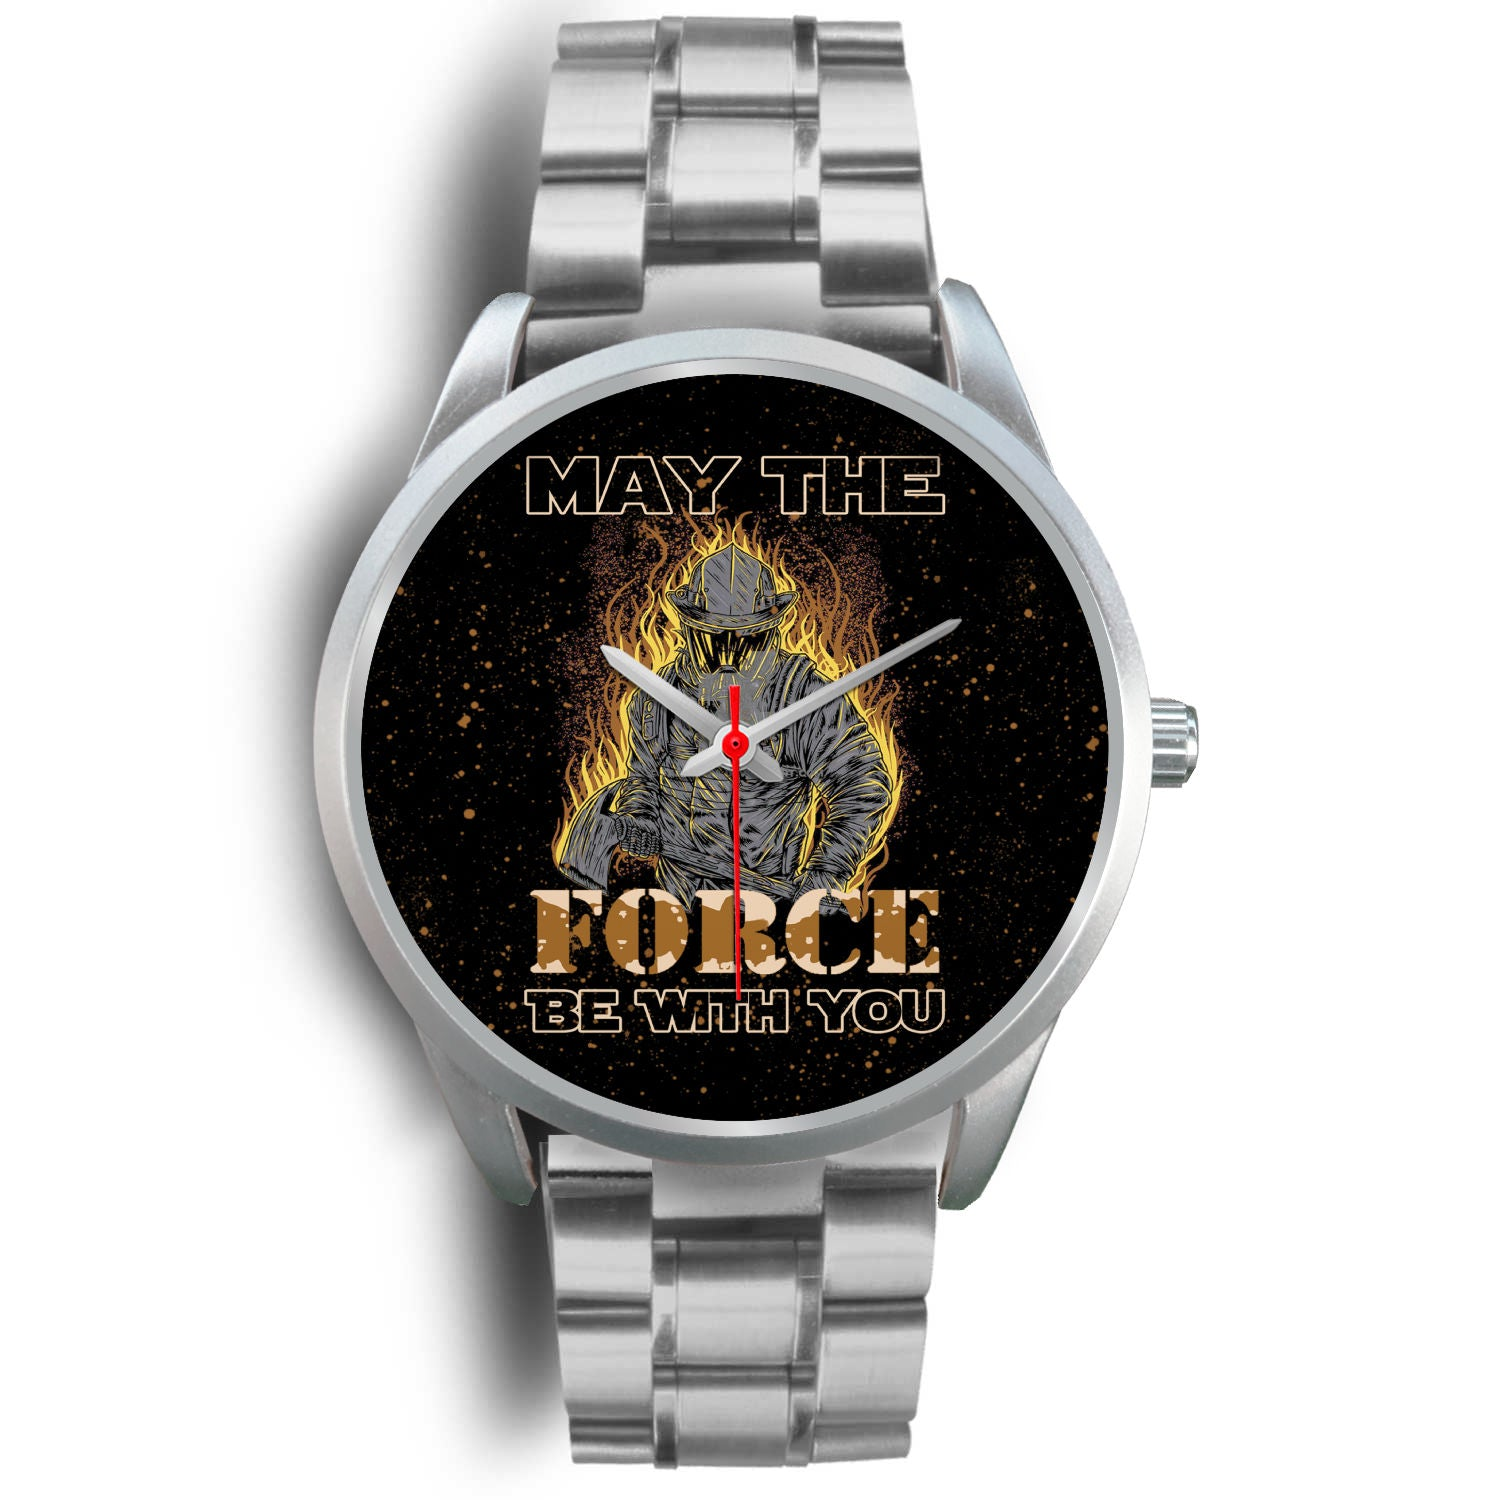 VIRA STAINLESS STEEL WATCH FOR FIREFIGHTER